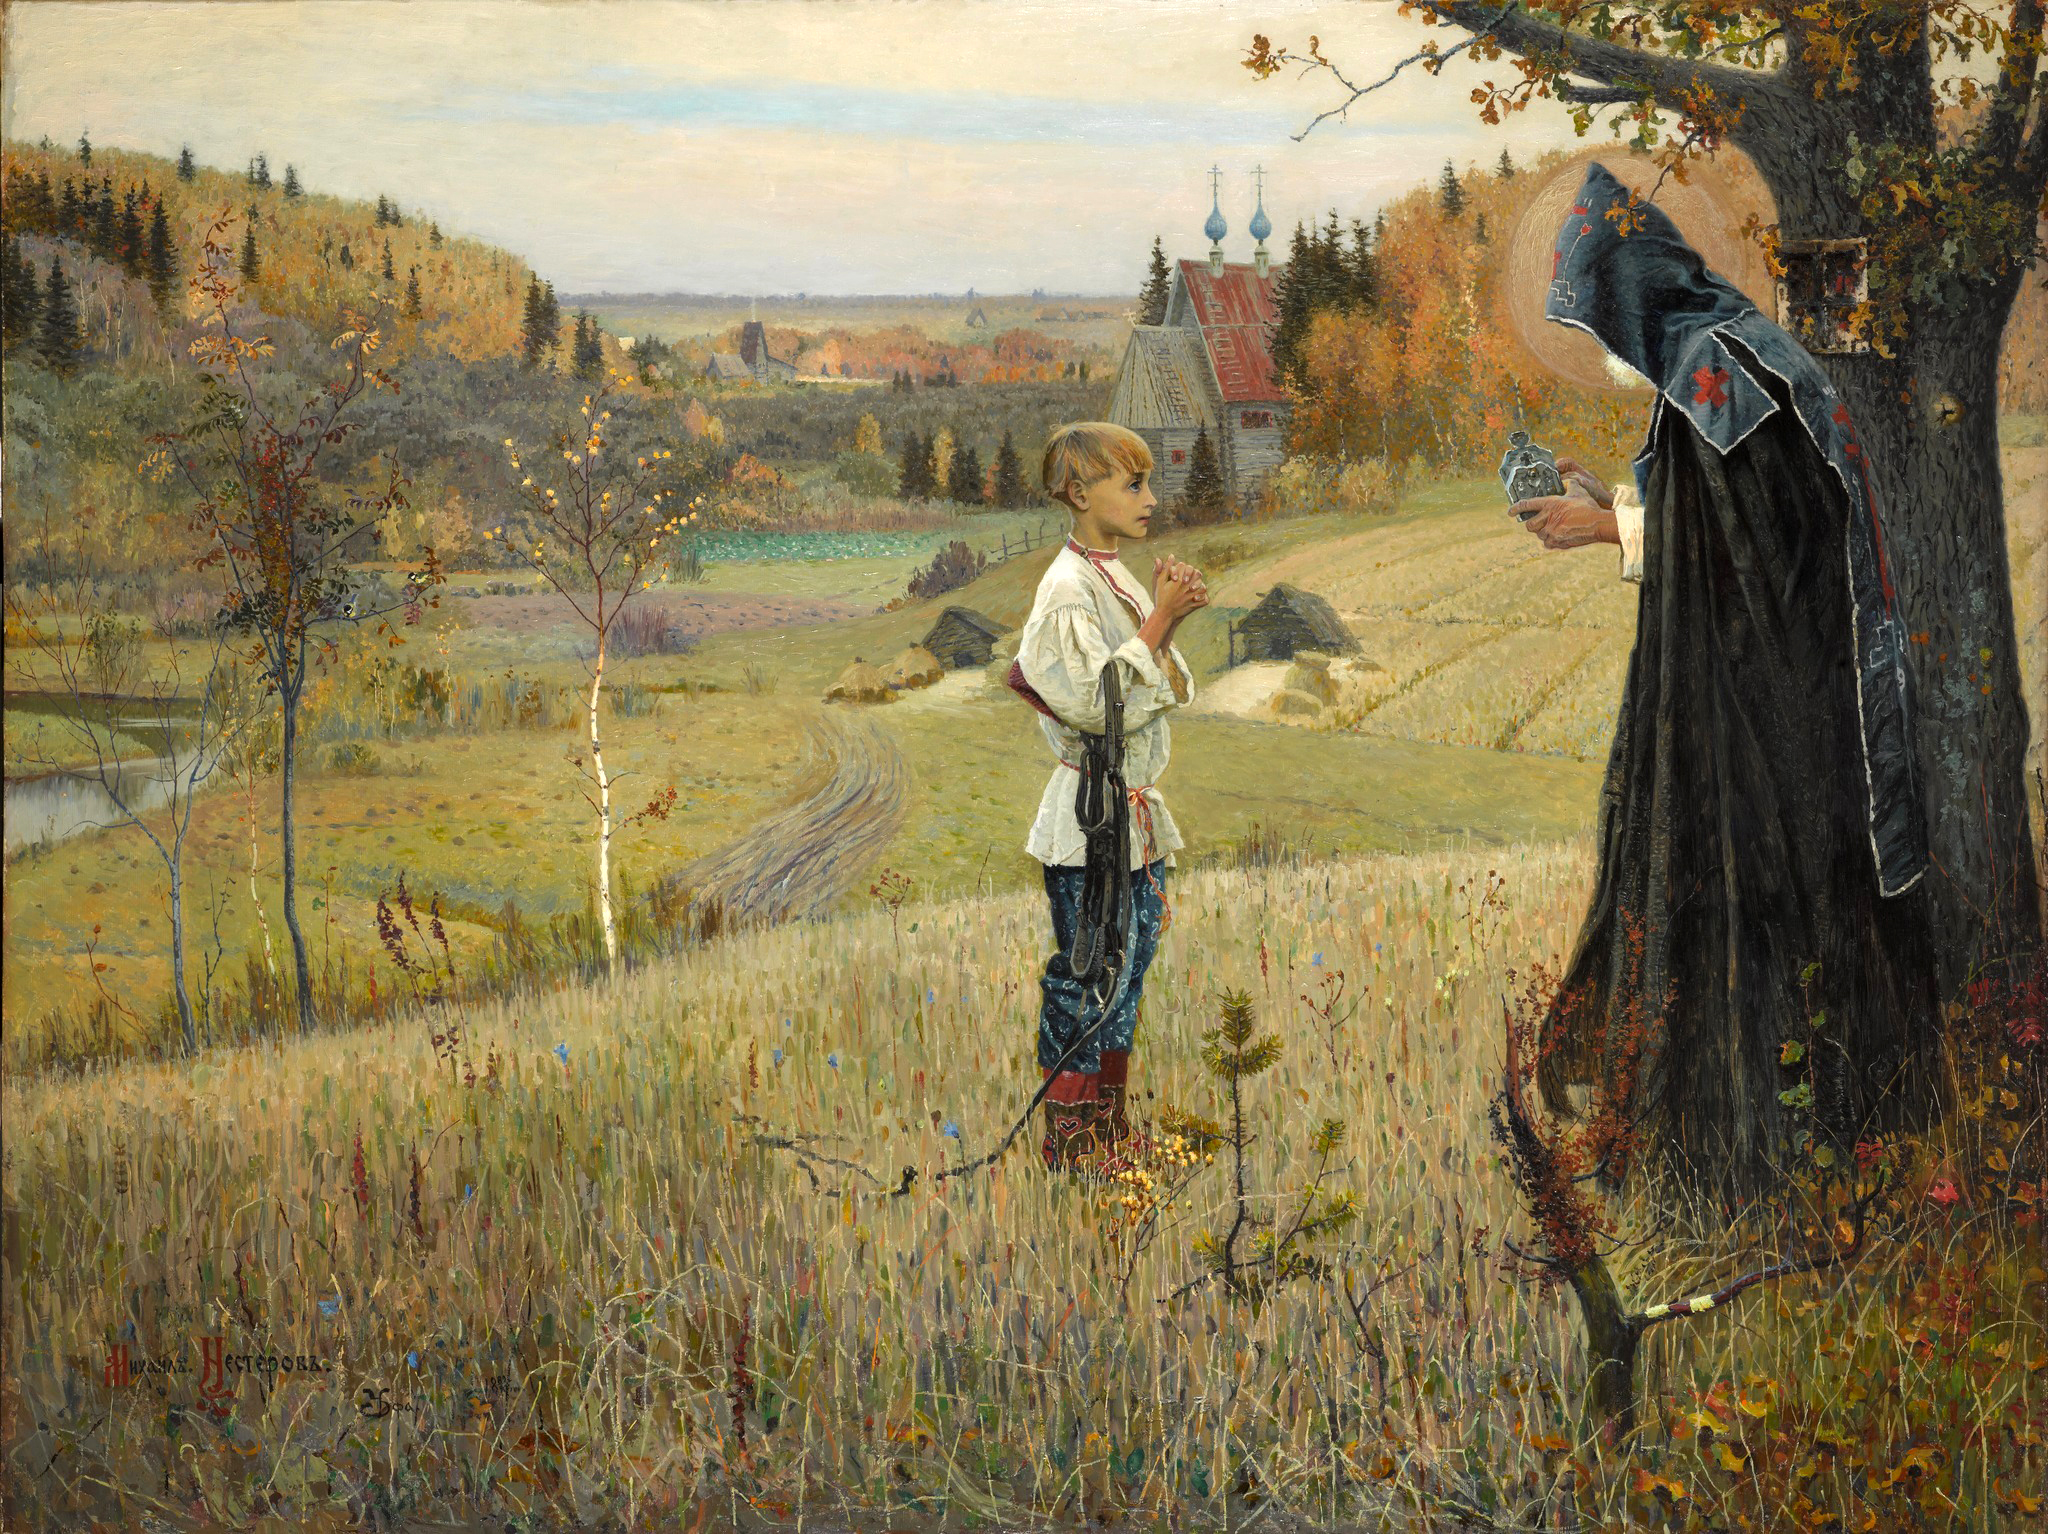 https://upload.wikimedia.org/wikipedia/commons/2/26/Mikhail_Nesterov_001.jpg